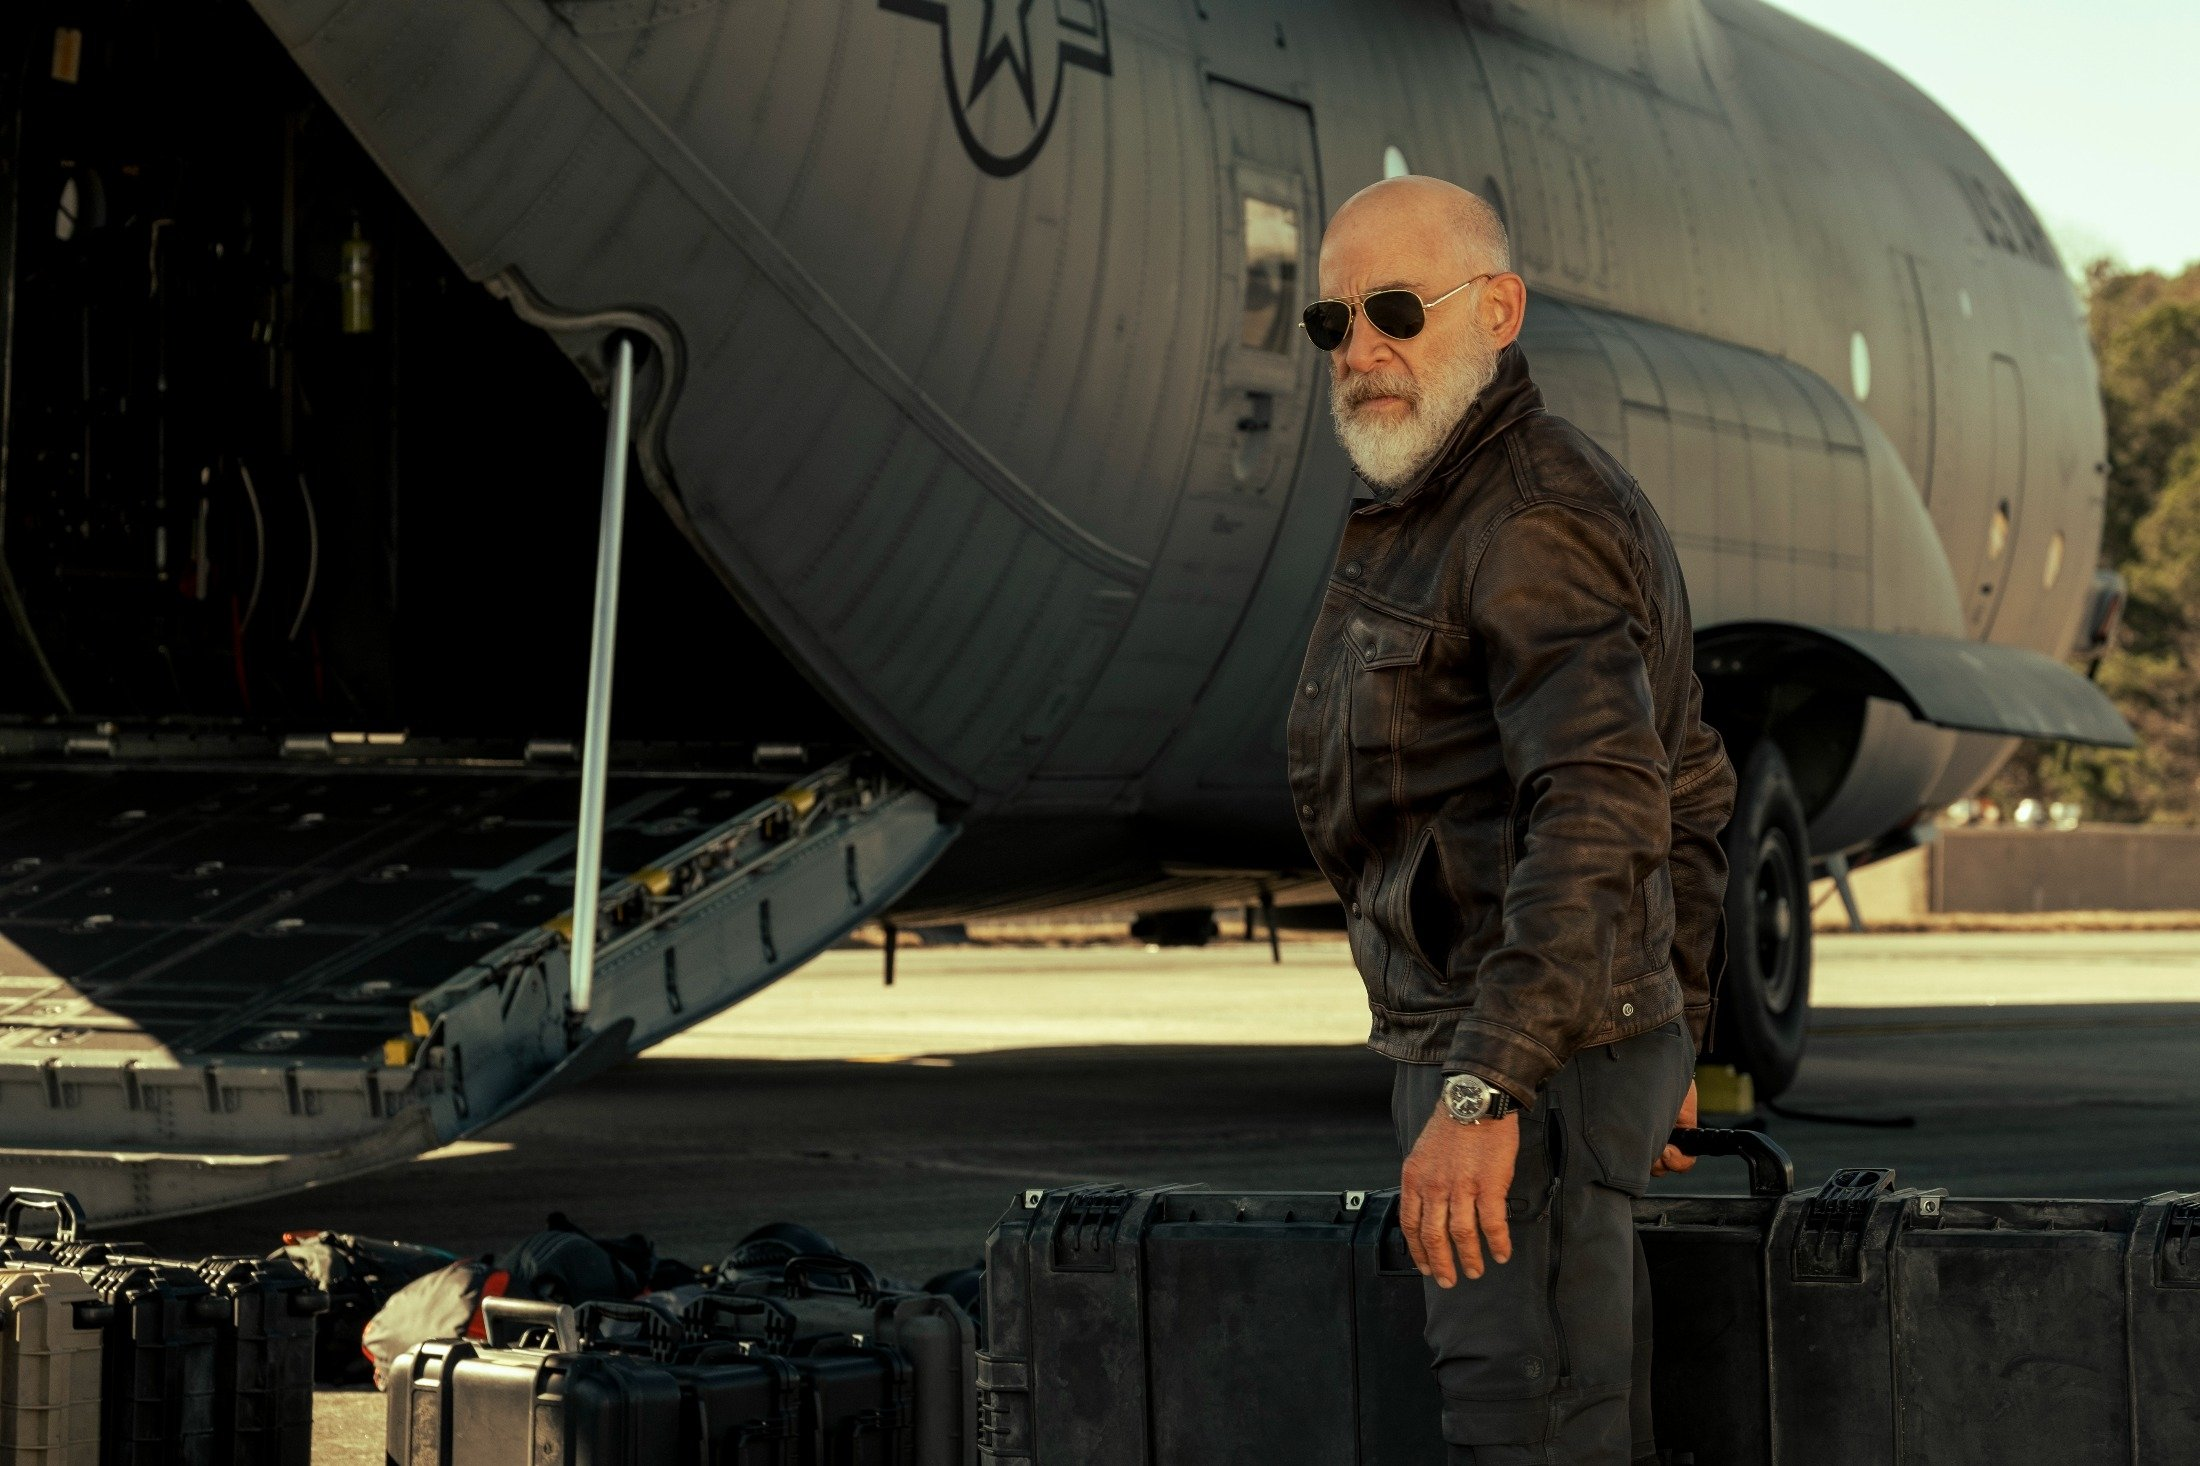 J. K. Simmons stands behind a military cargo plane, in a scene from 'The Tomorrow War.' (Amazon via AP)